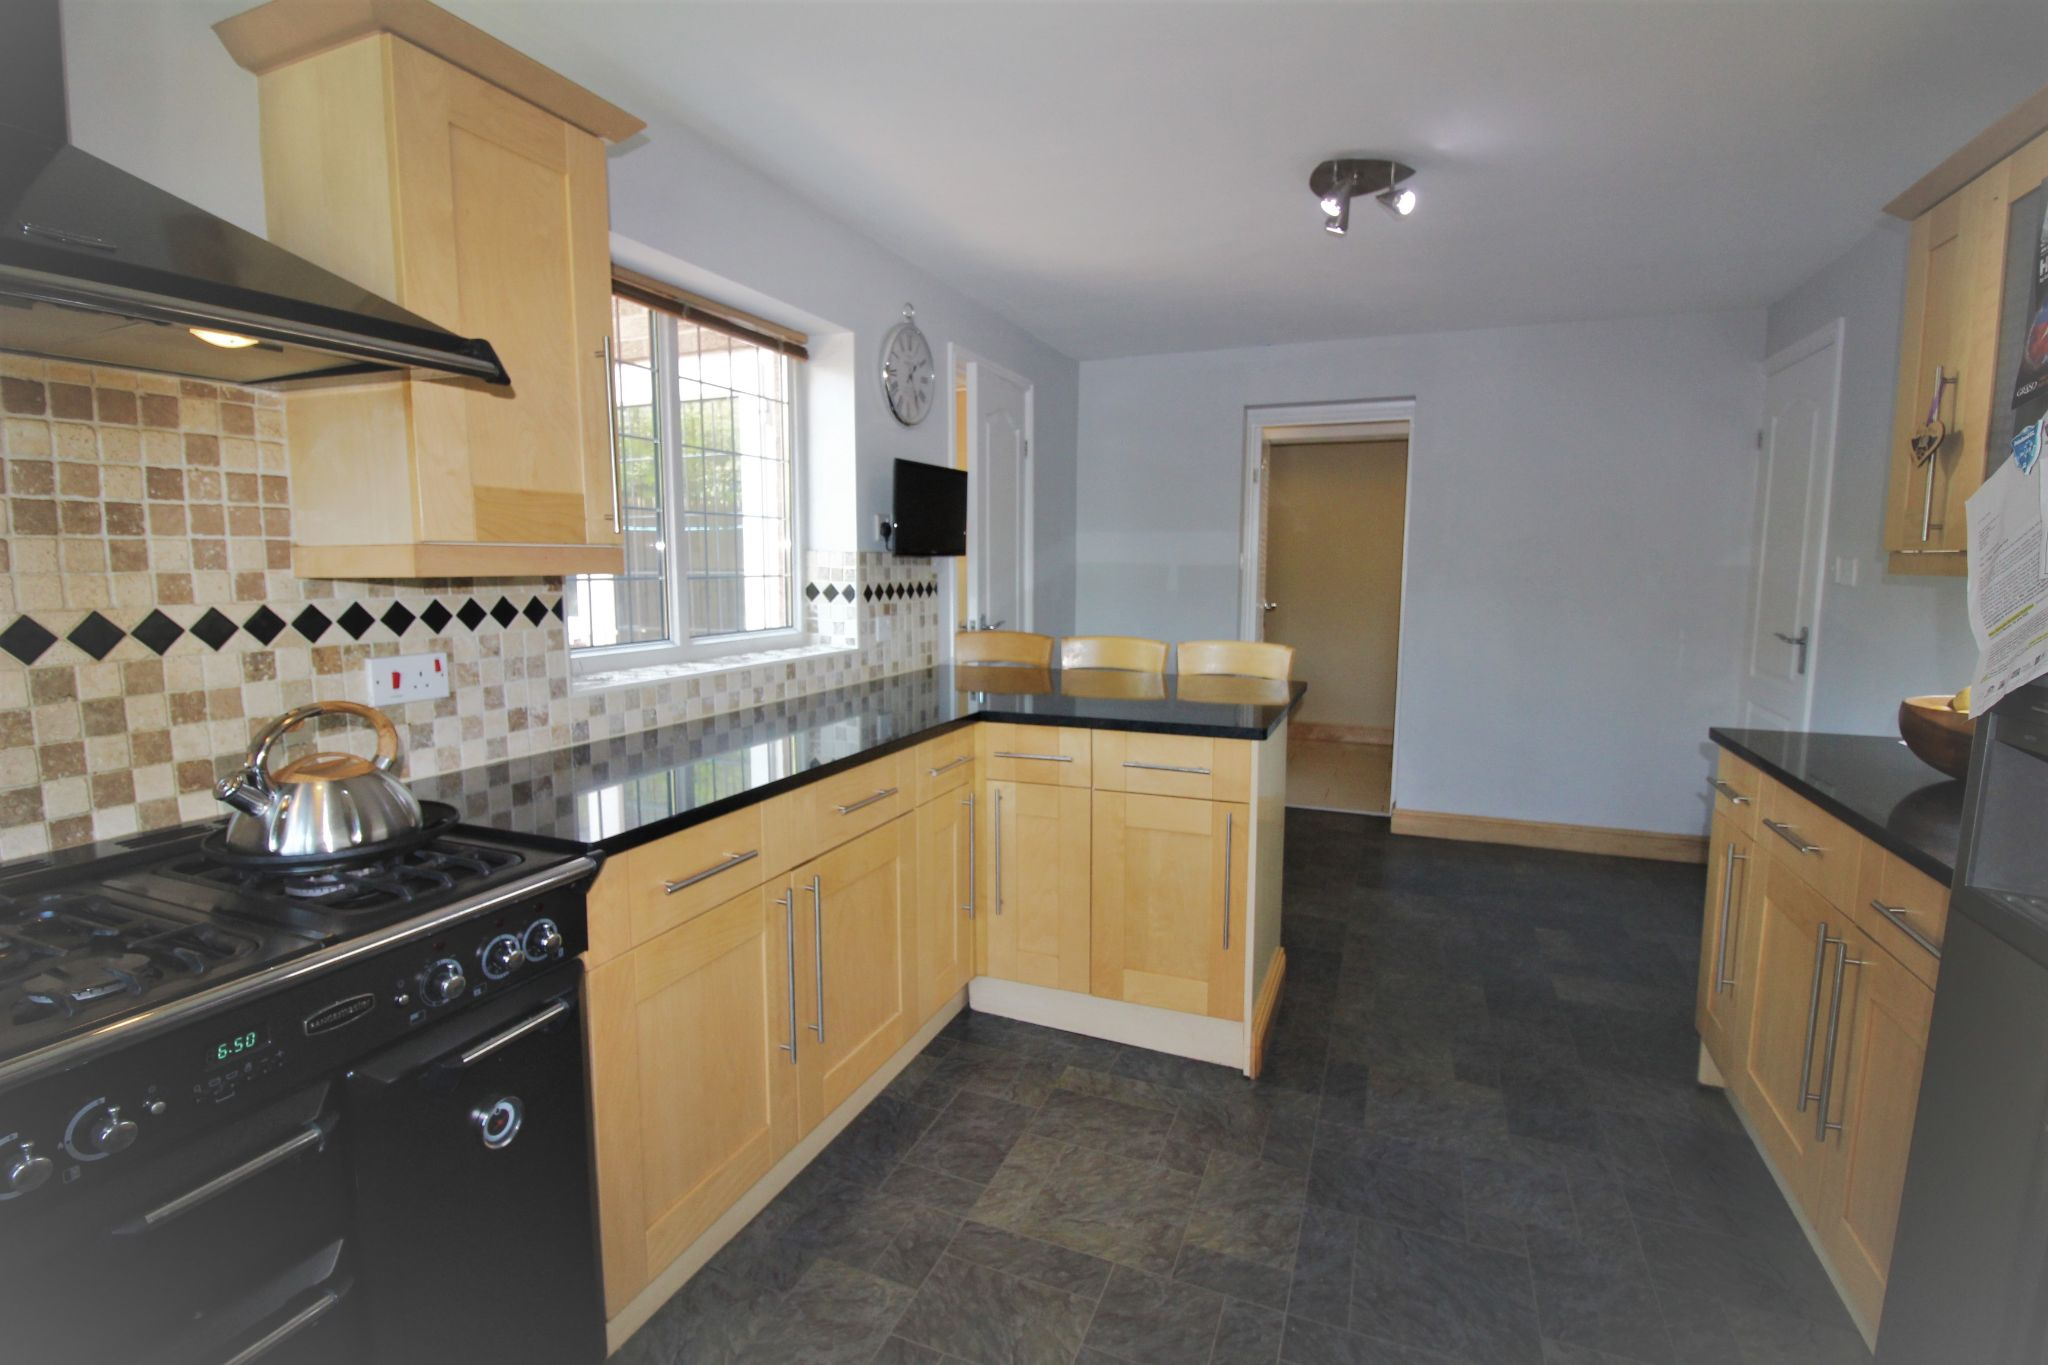 6 bedroom detached house For Sale in Solihull - Photograph 6.